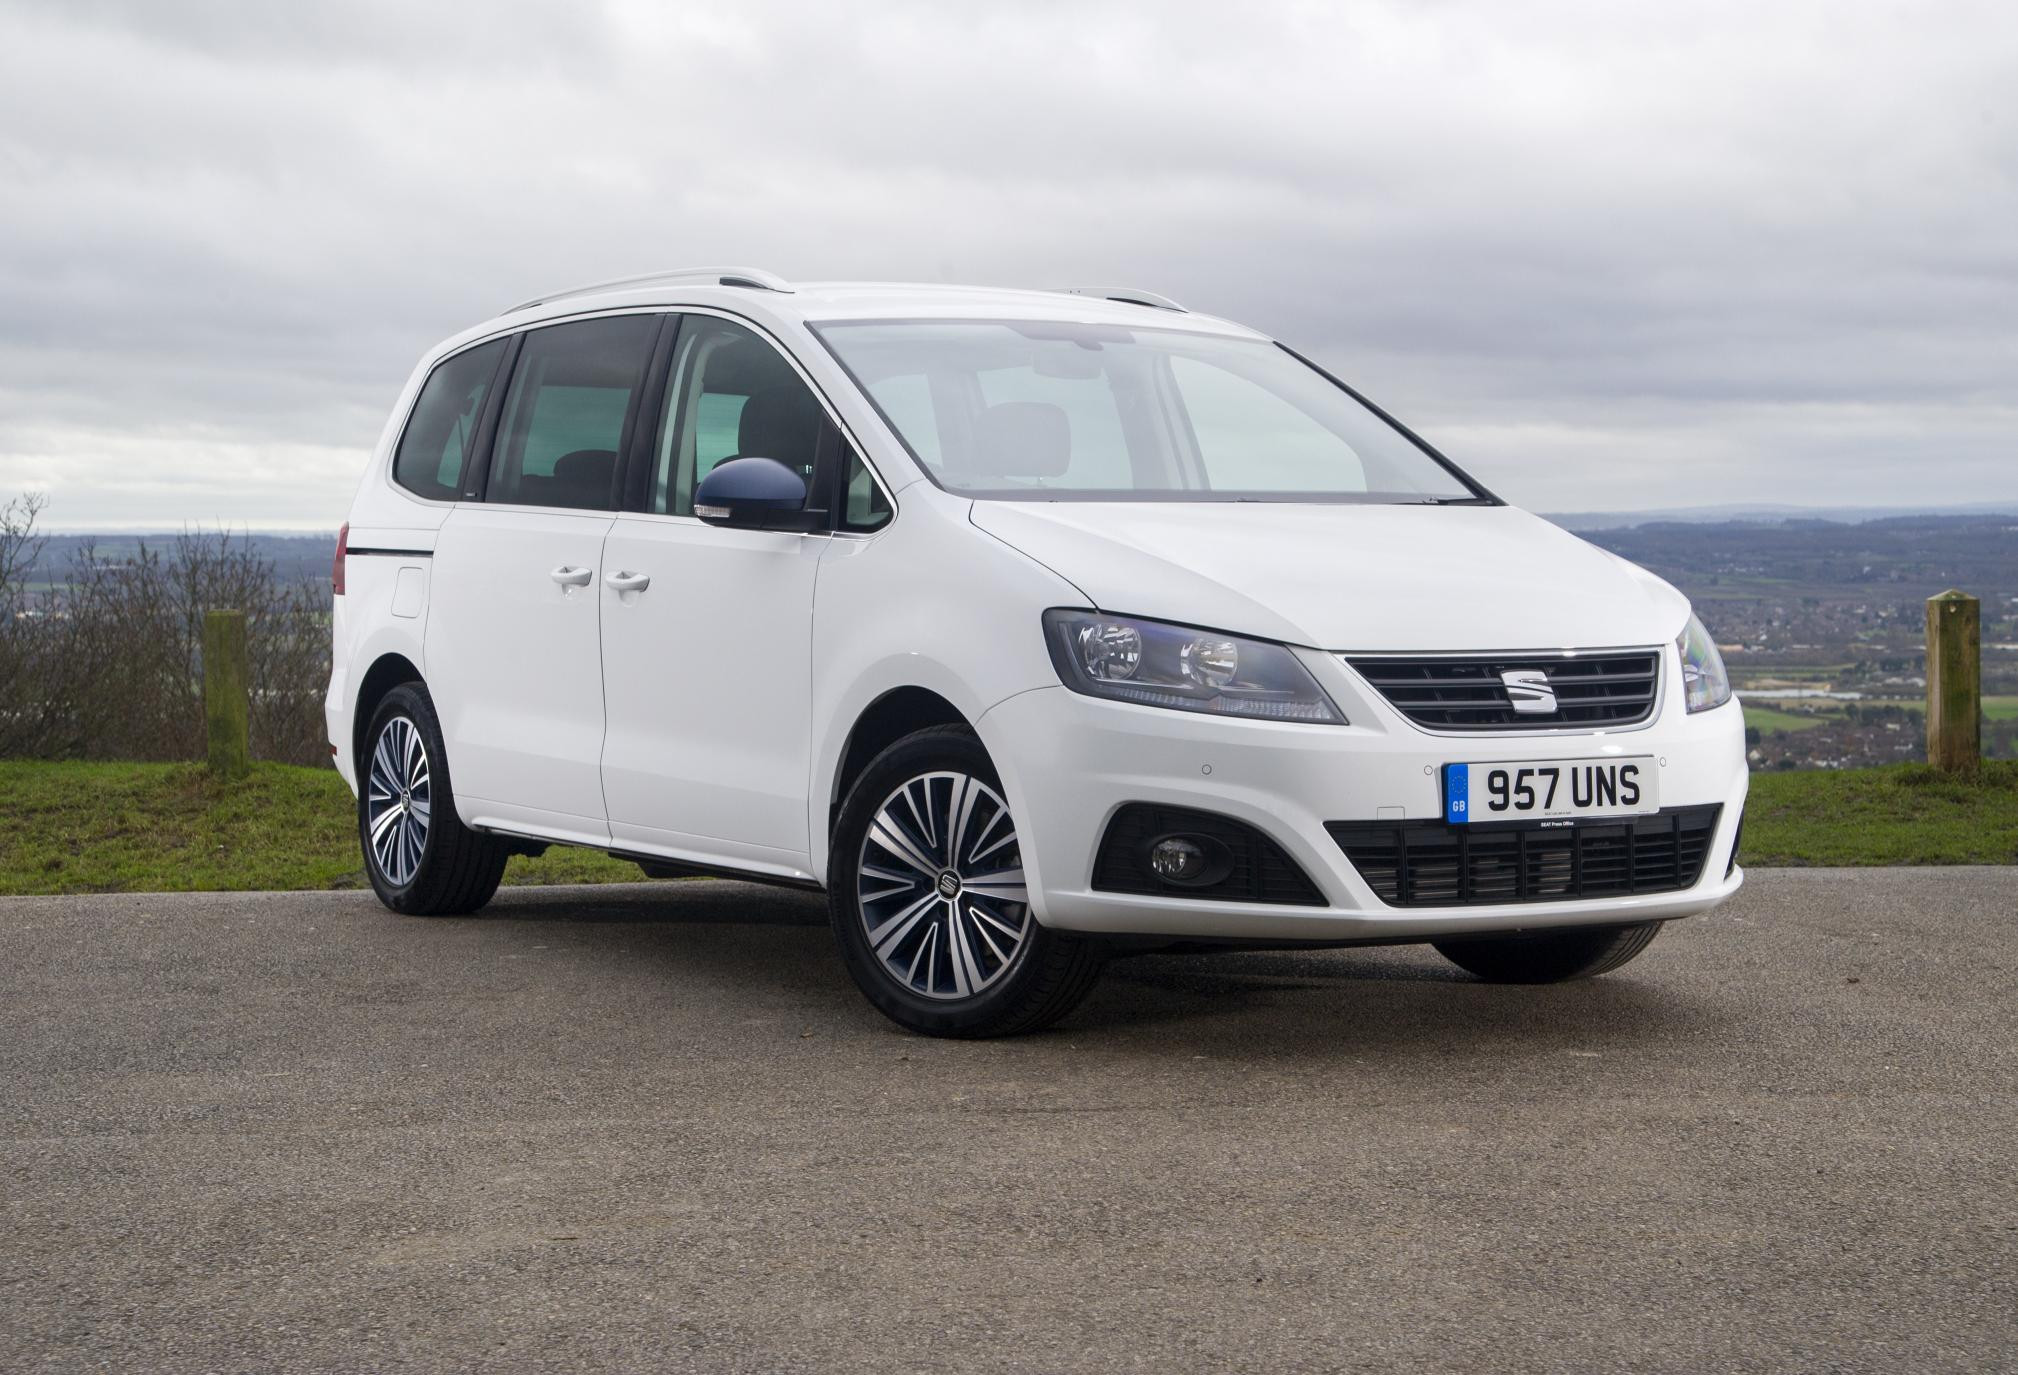 White SEAT Alhambra parked on tarmac and facing three-quarters to right